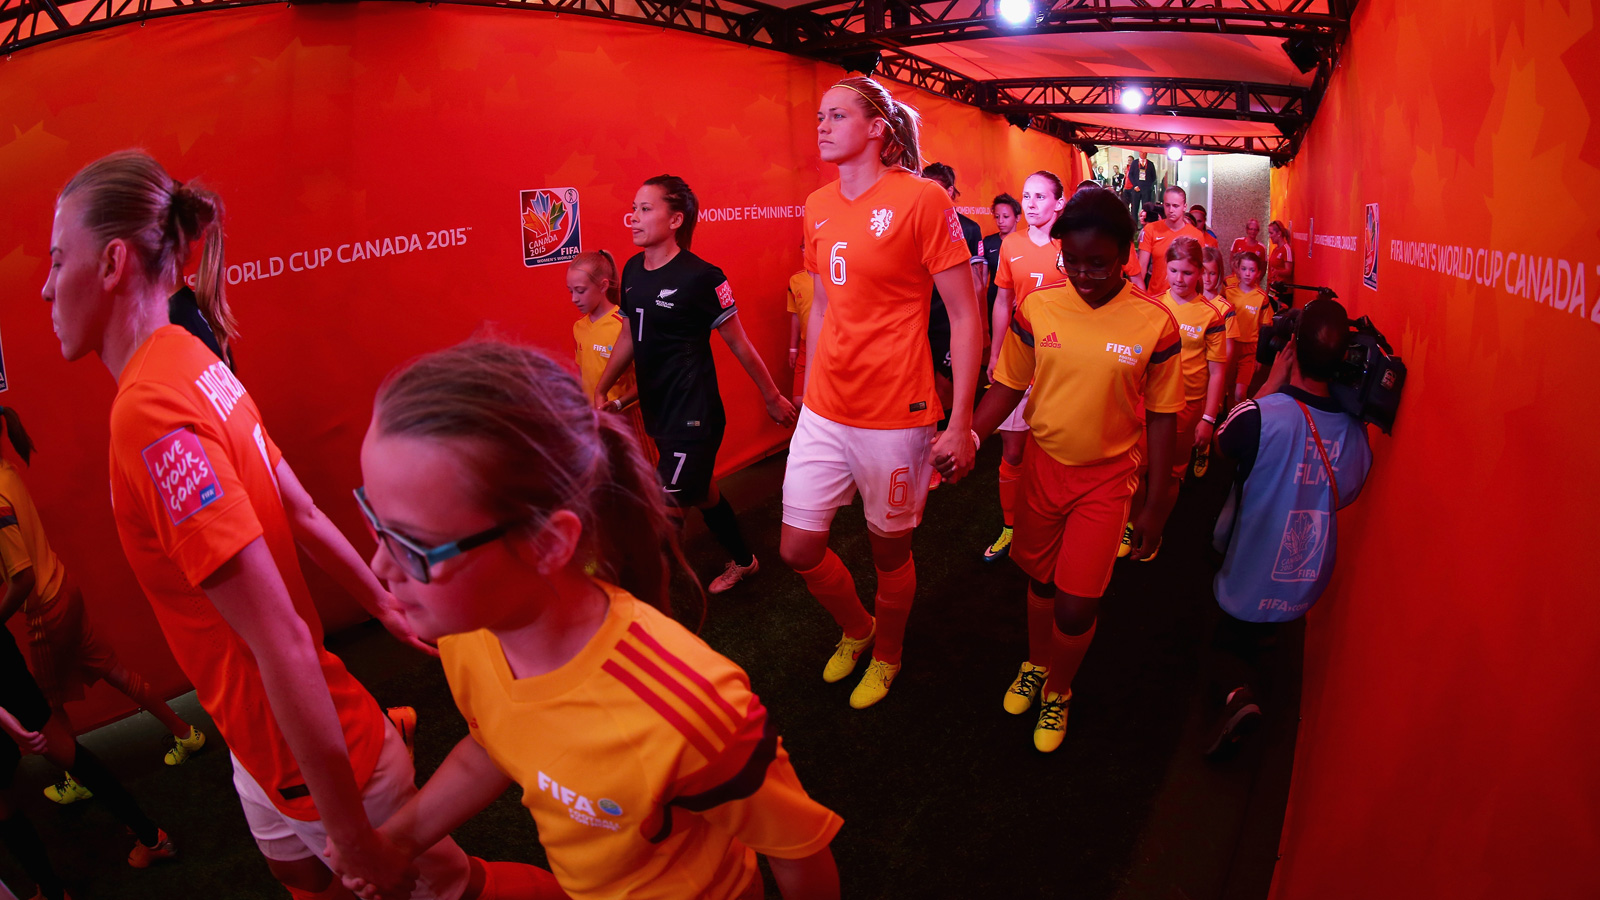 Netherlands and New Zealand players walk through the tunnel out to the Commonwealth Stadium field for their Group A encounter in the Women's World Cup.